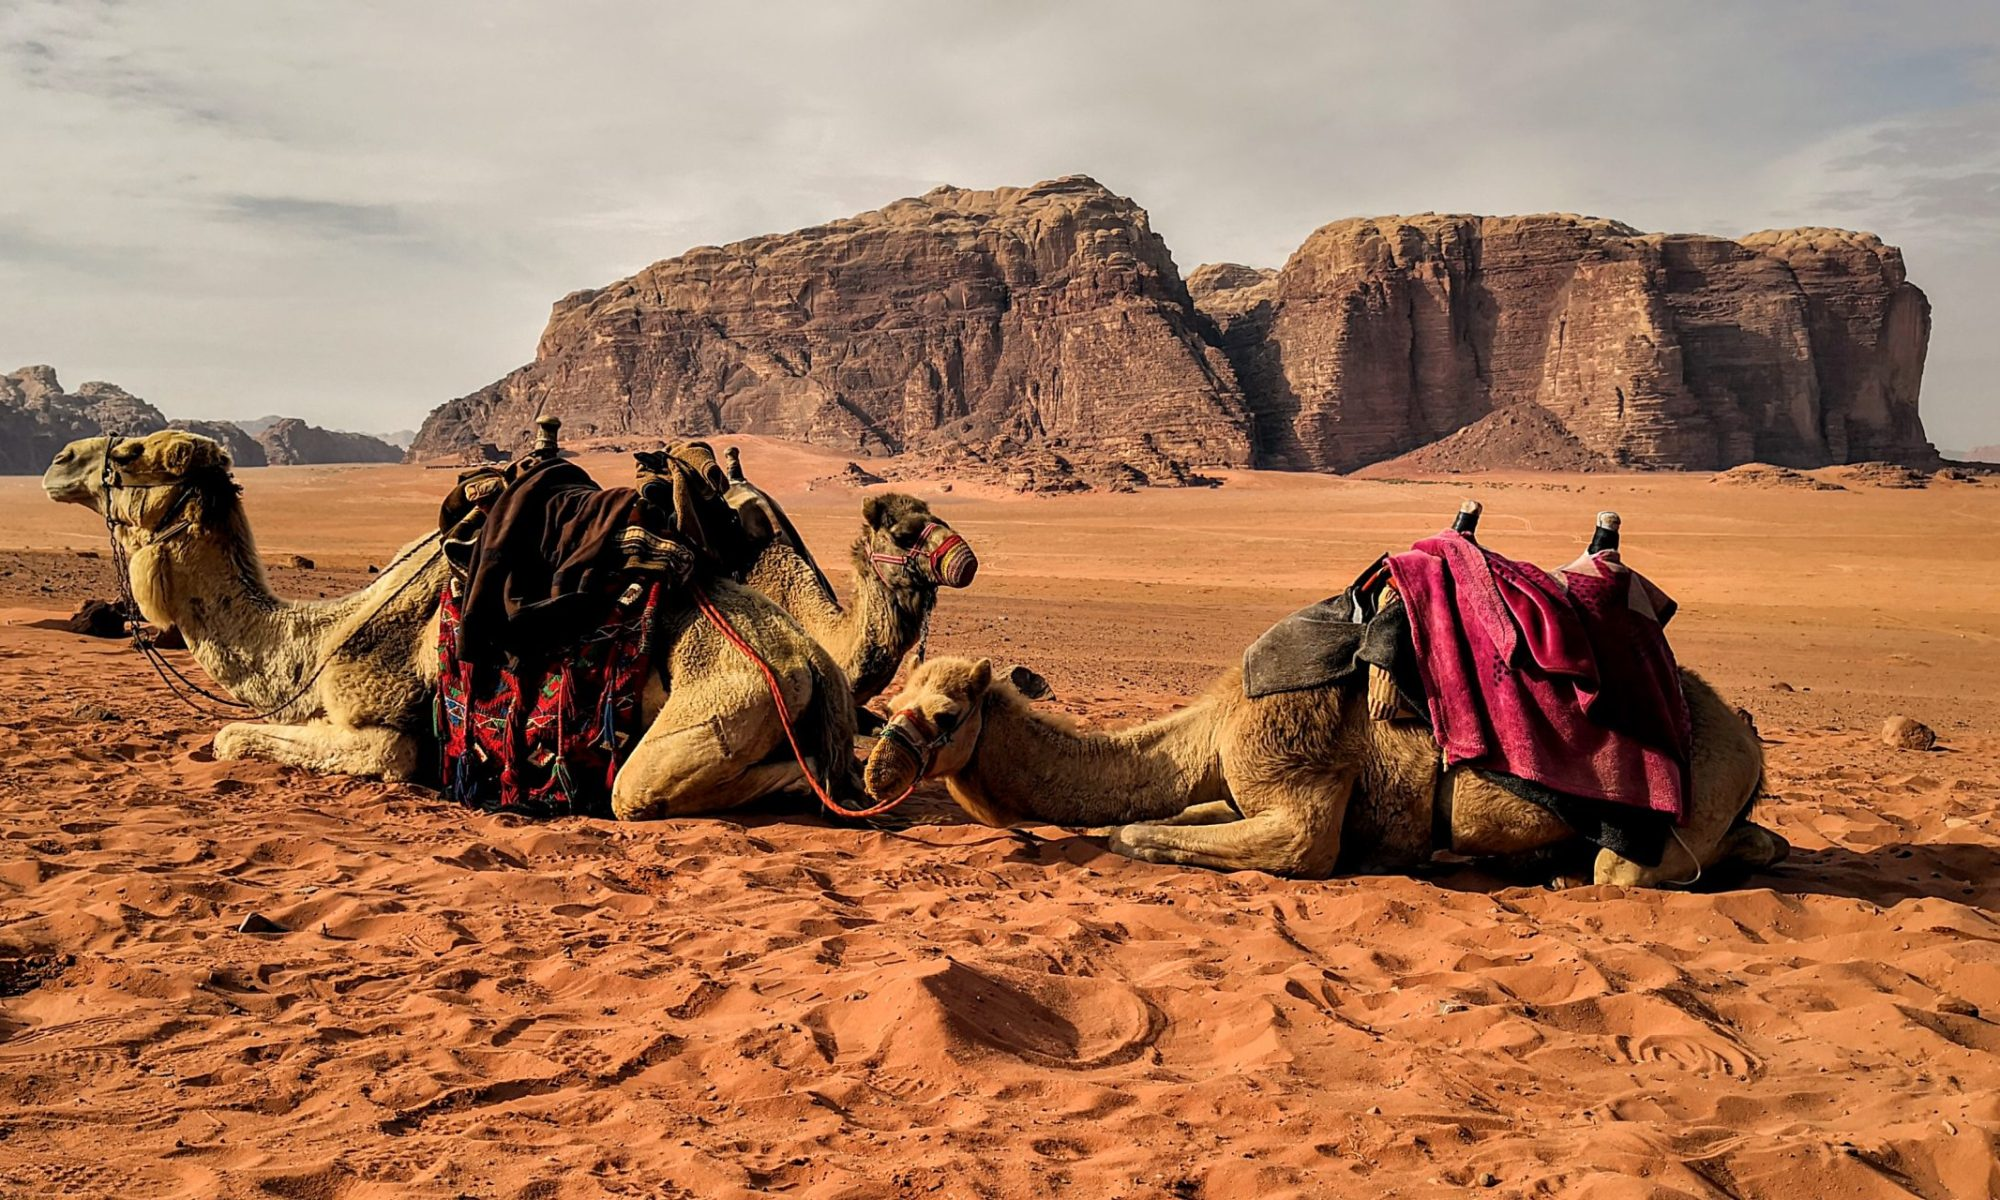 Two Camels in front of rock formation in Wadi Rum, Jordan